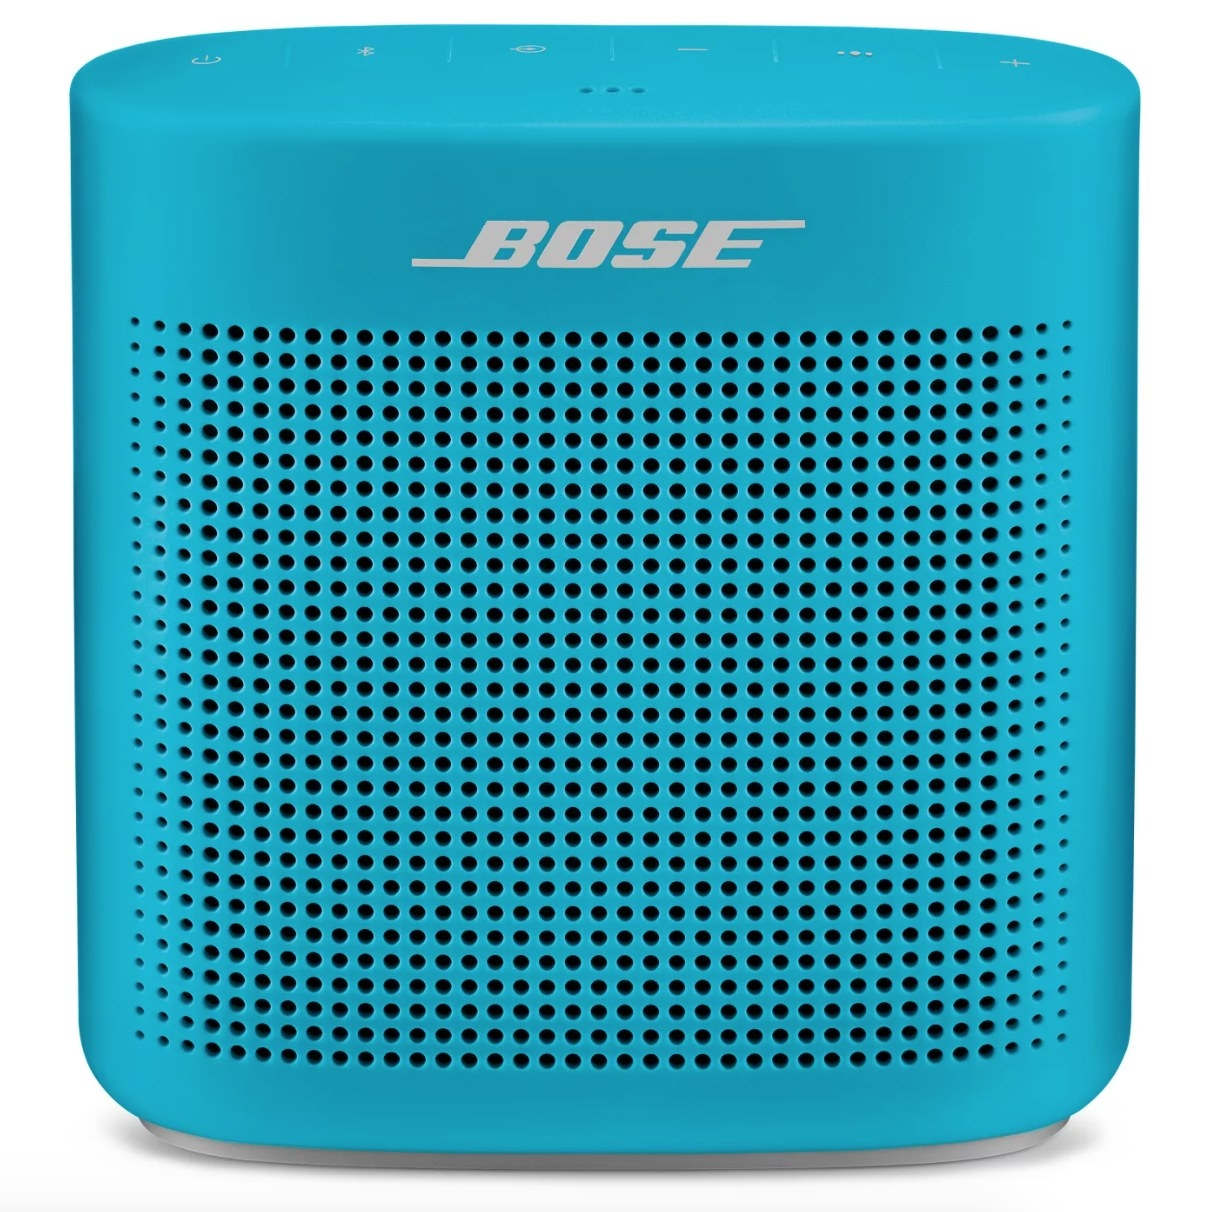 A light blue Bose Bluetooth speaker